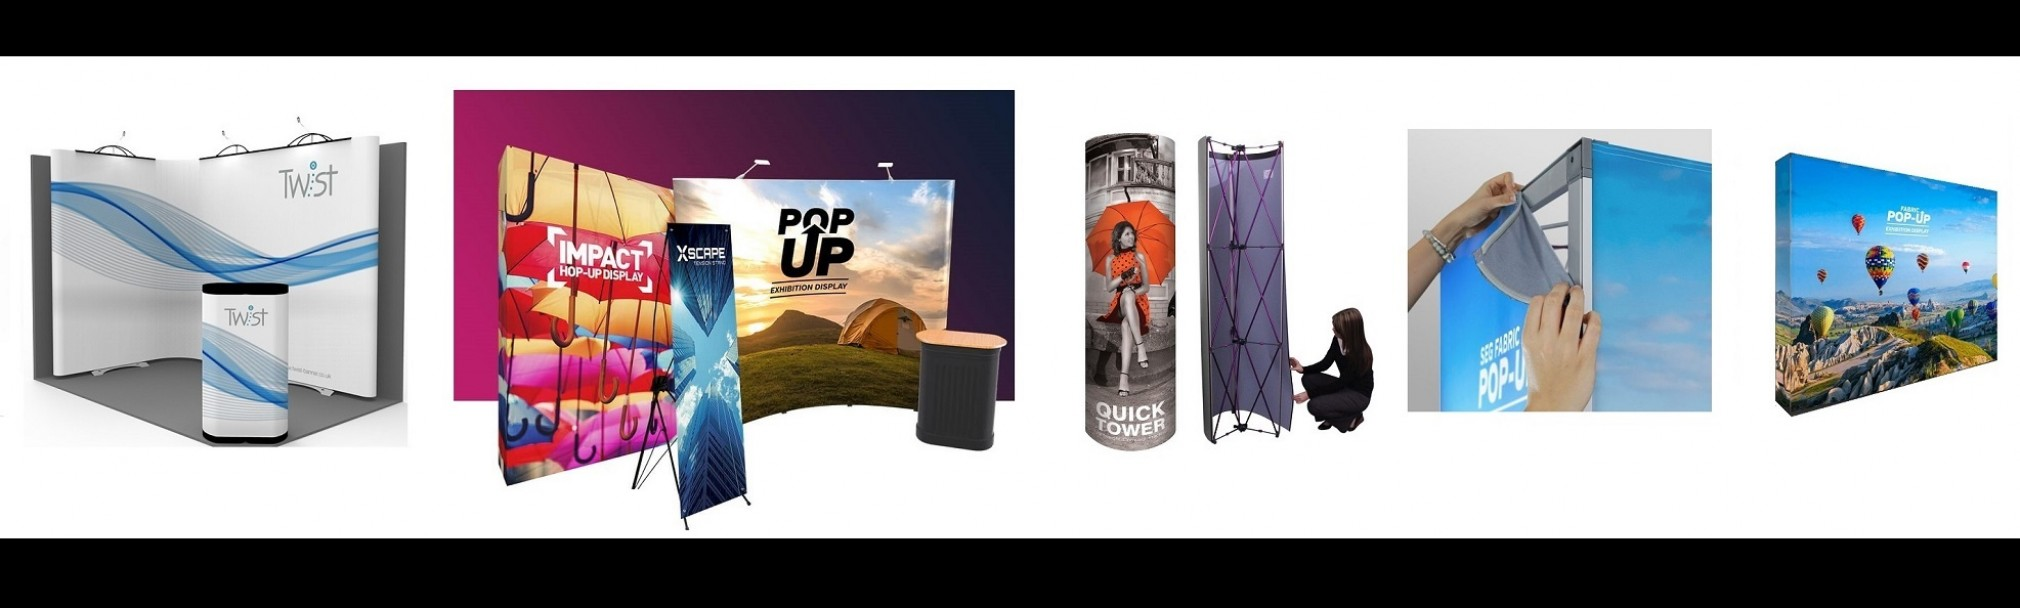 Slideshow Printed Banners Fabric And Pop Up 1